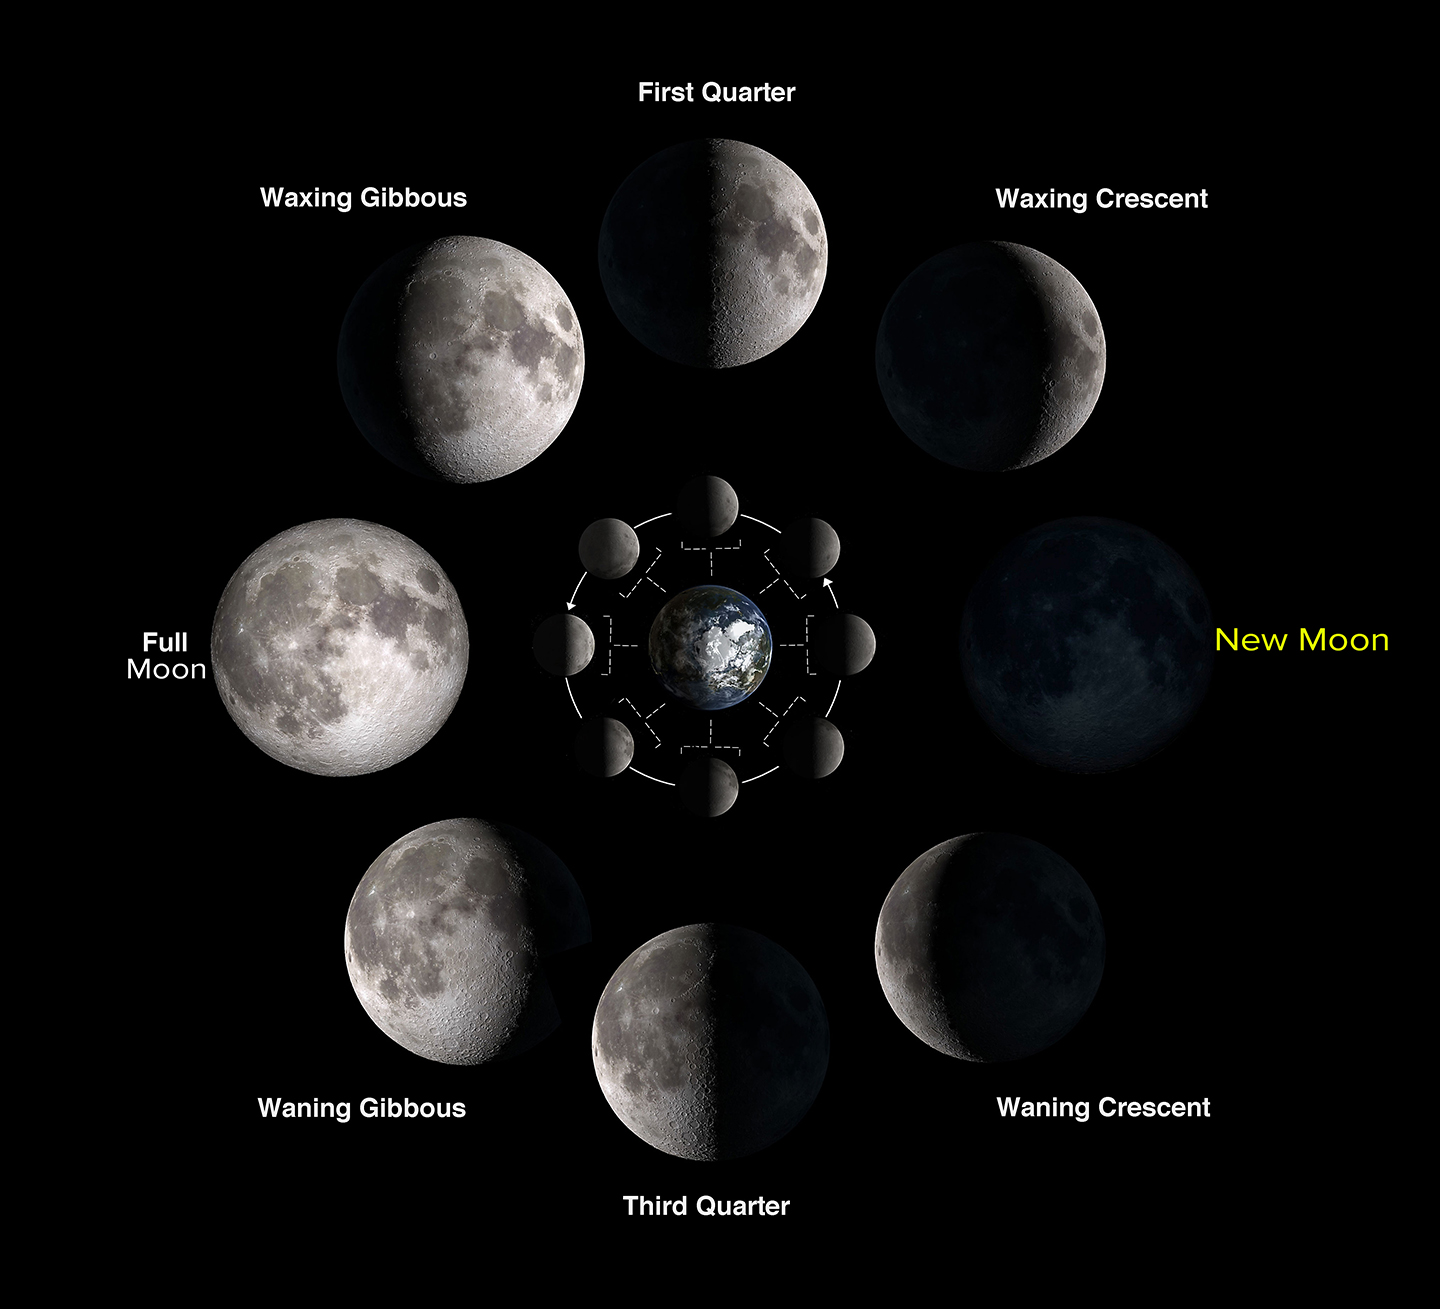 moon phases - the new moon is best for stargazing